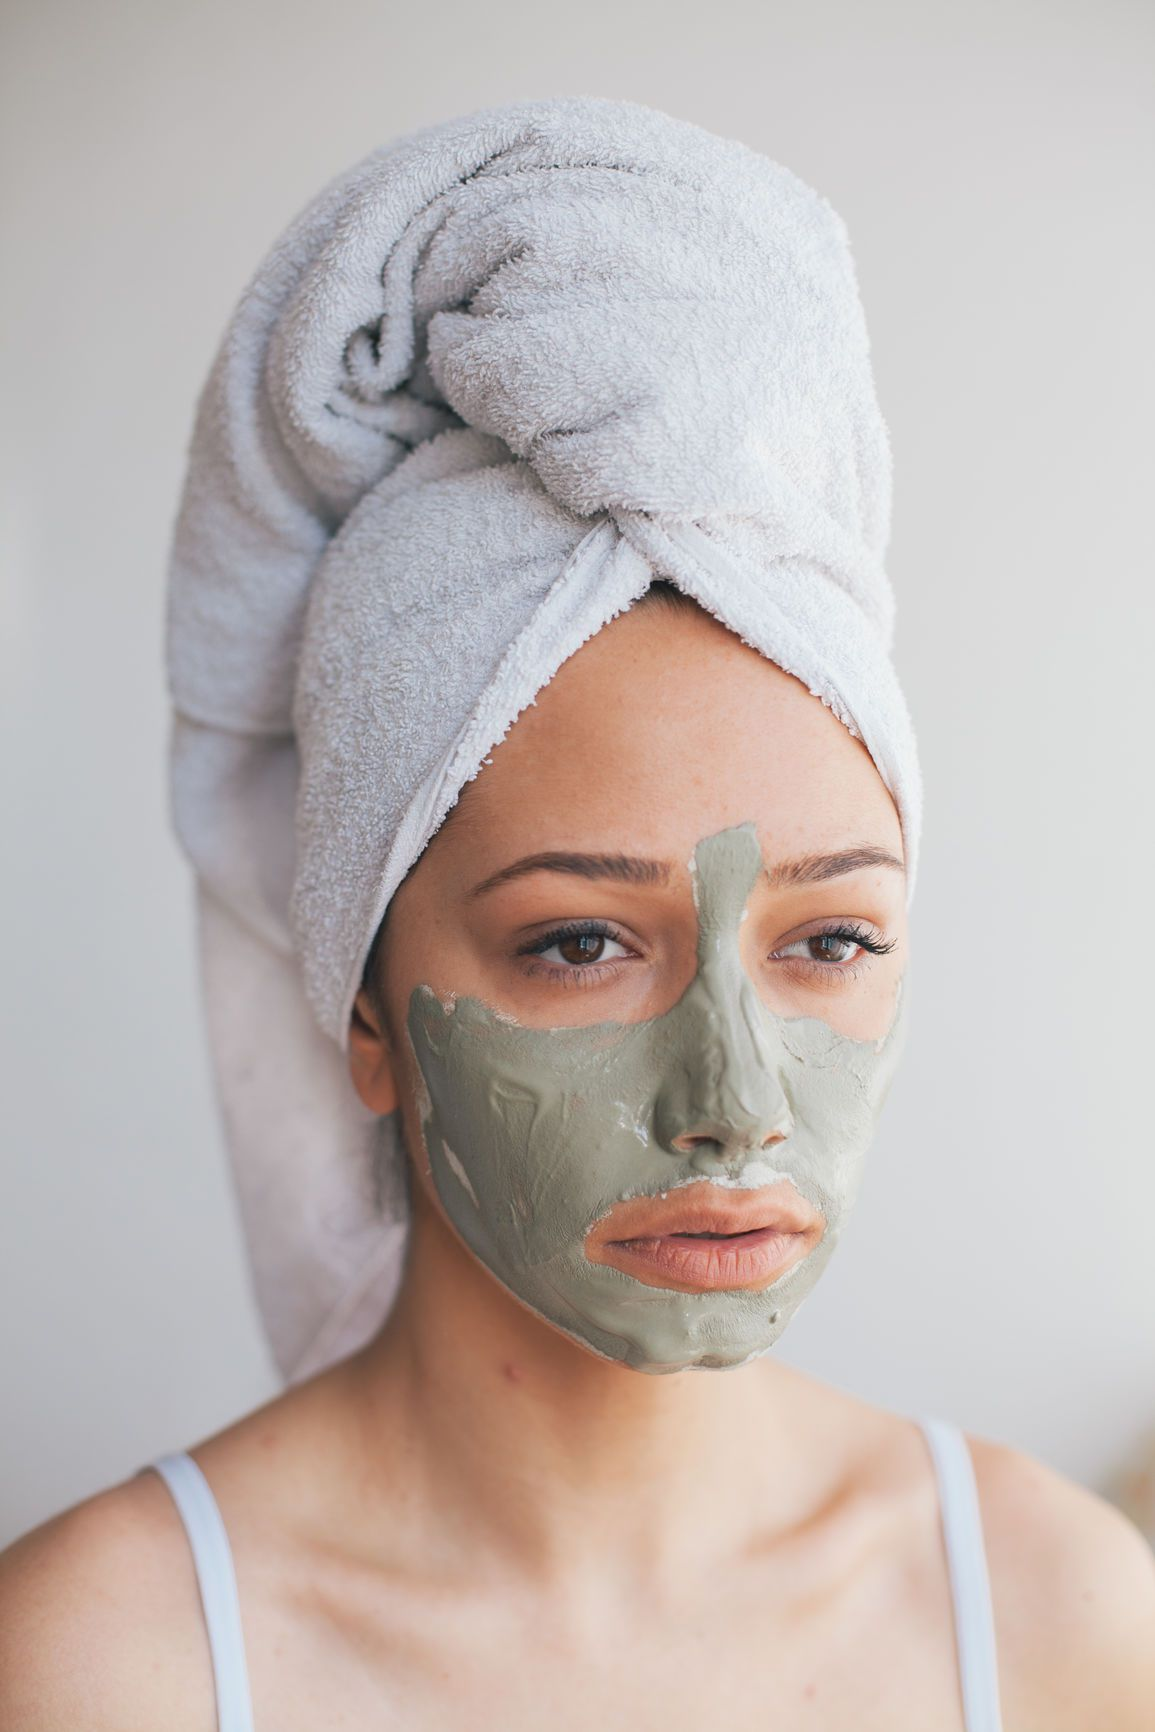 Cool Clay Mask Ideas